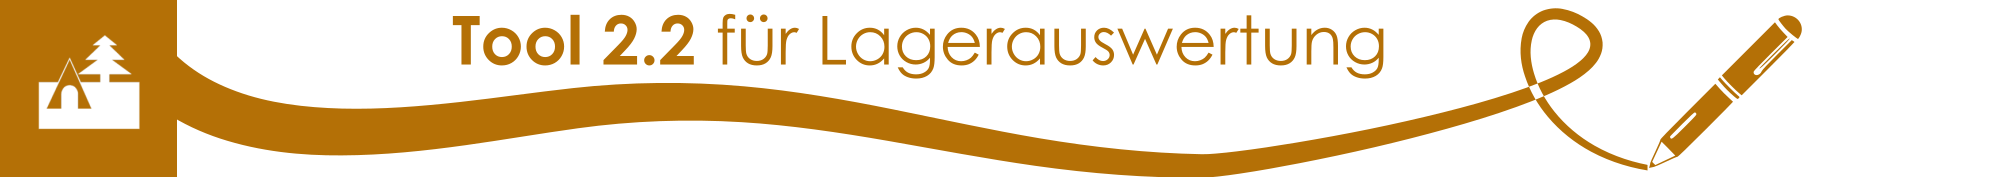 header_tool_lagerauswertung.png